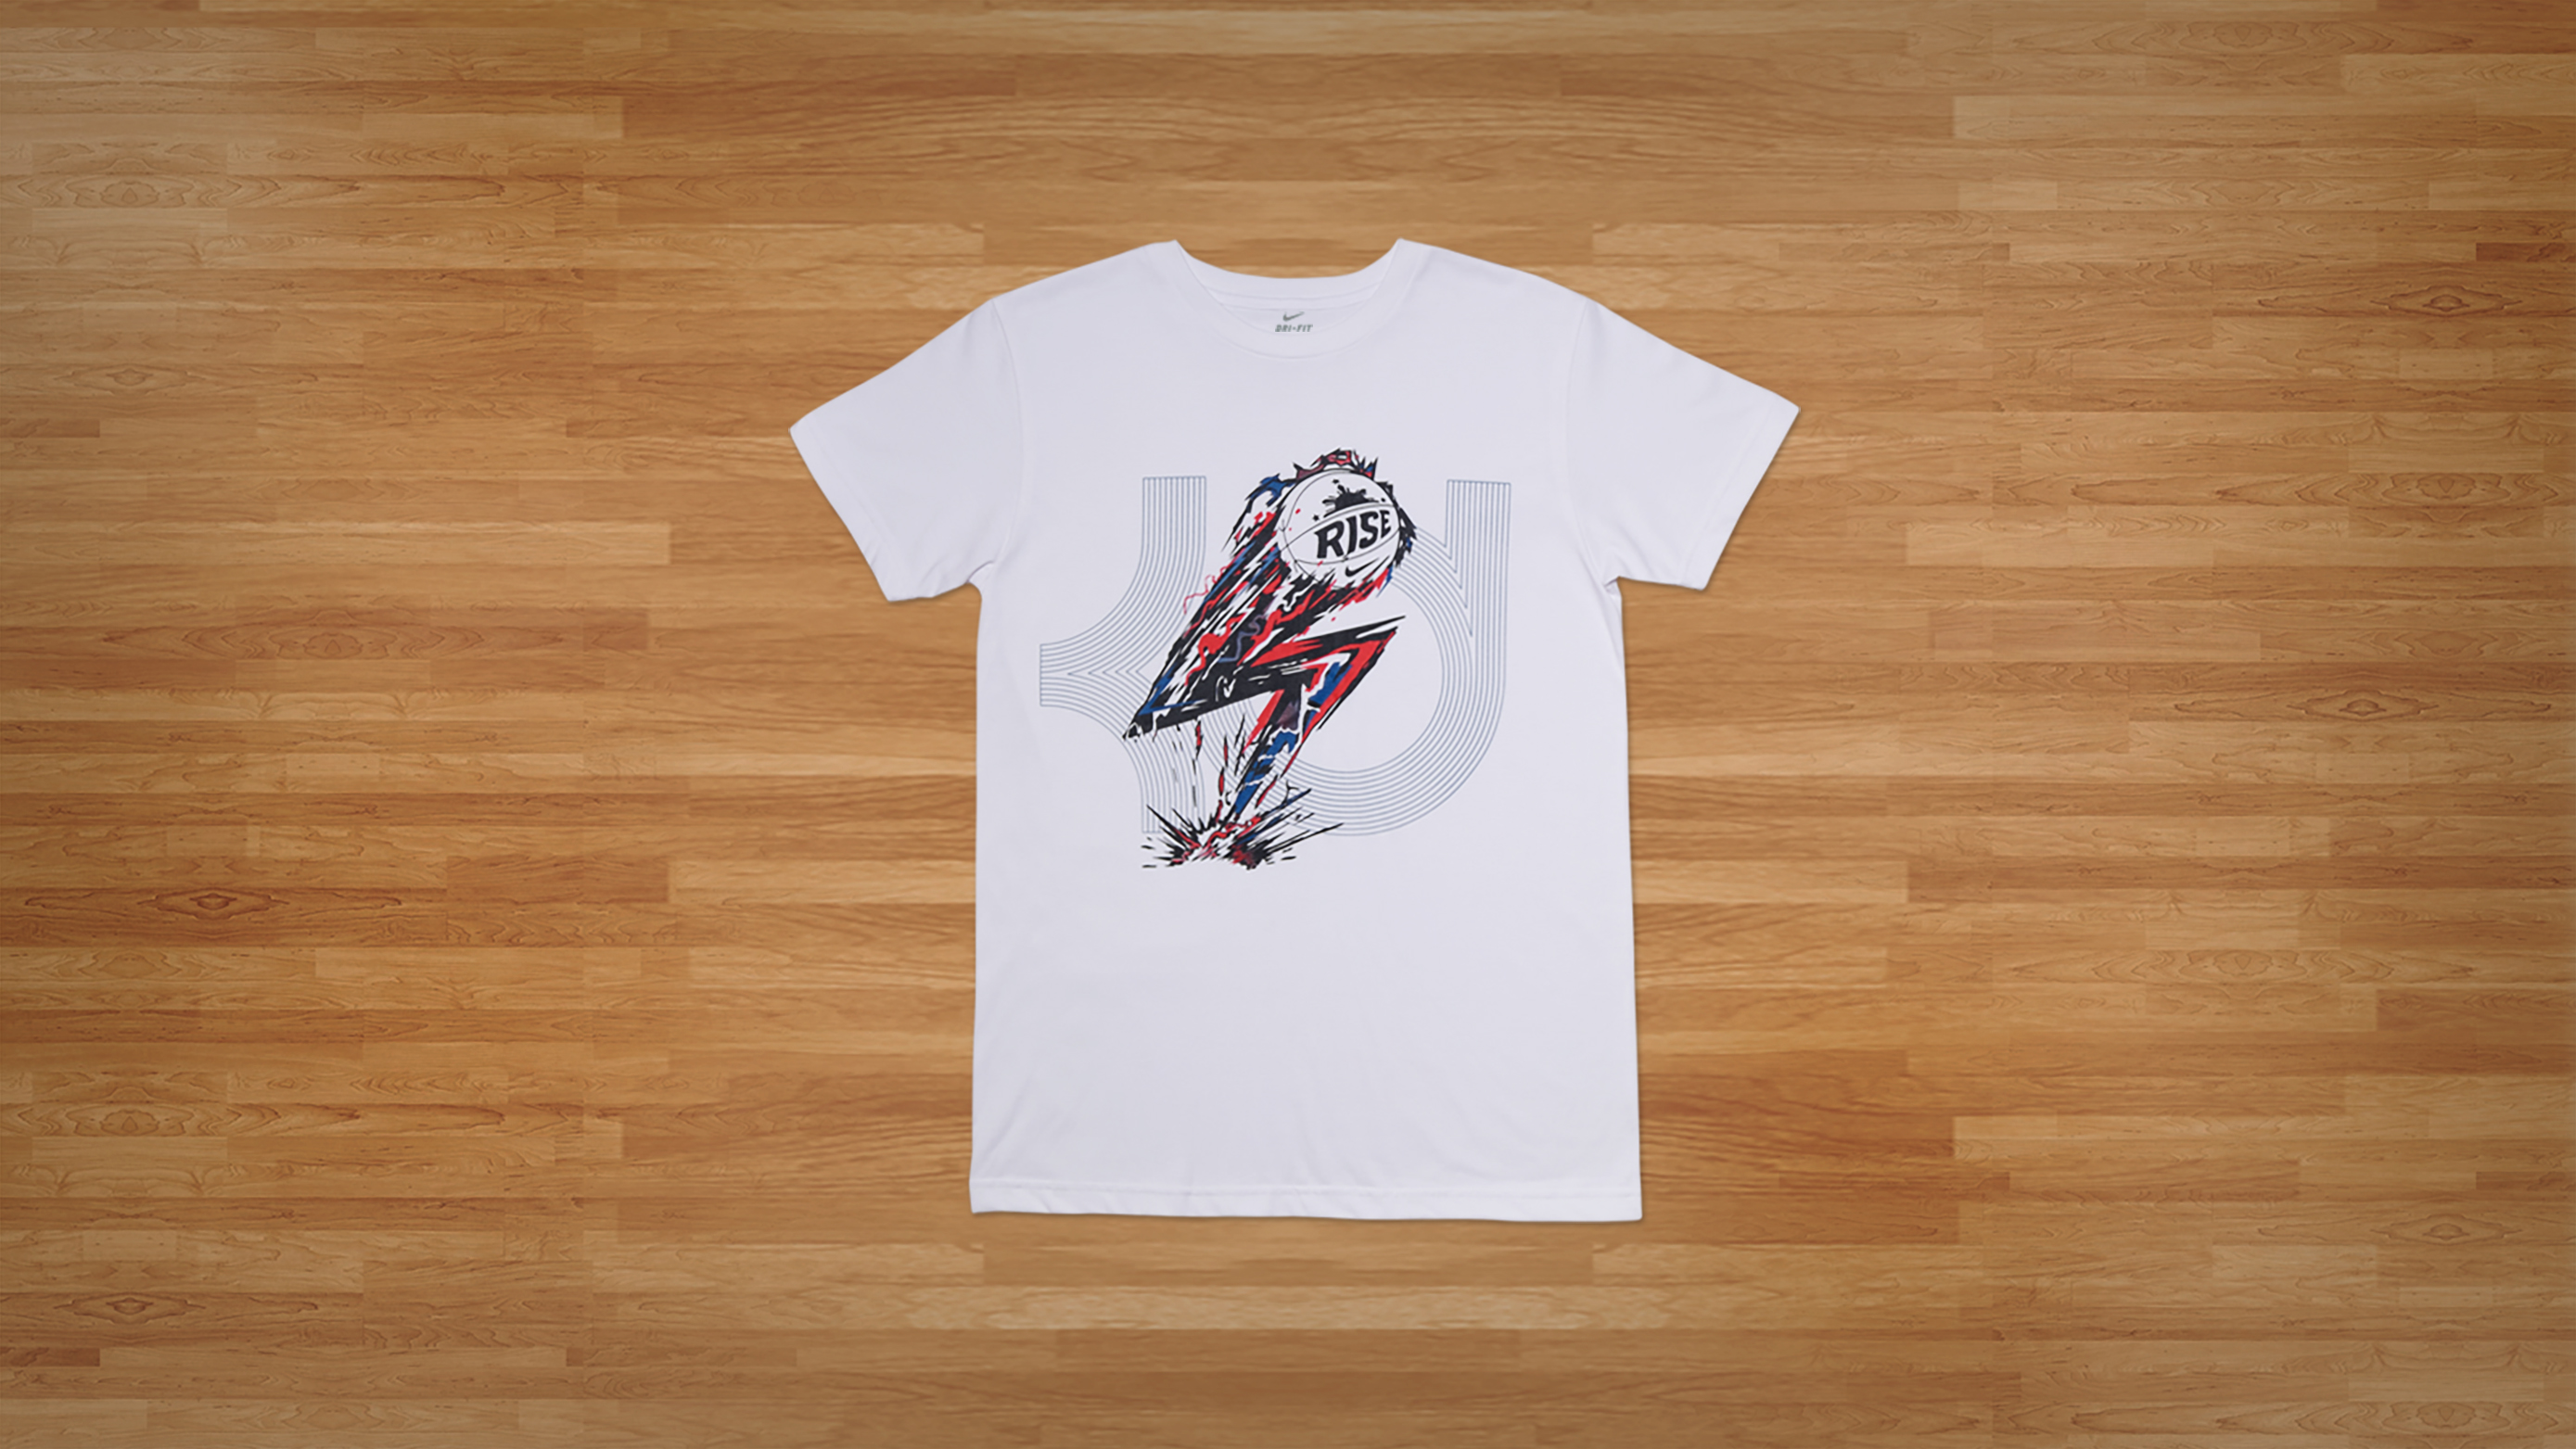 Nike T Shirt For Sale Philippines Rockwall Auction